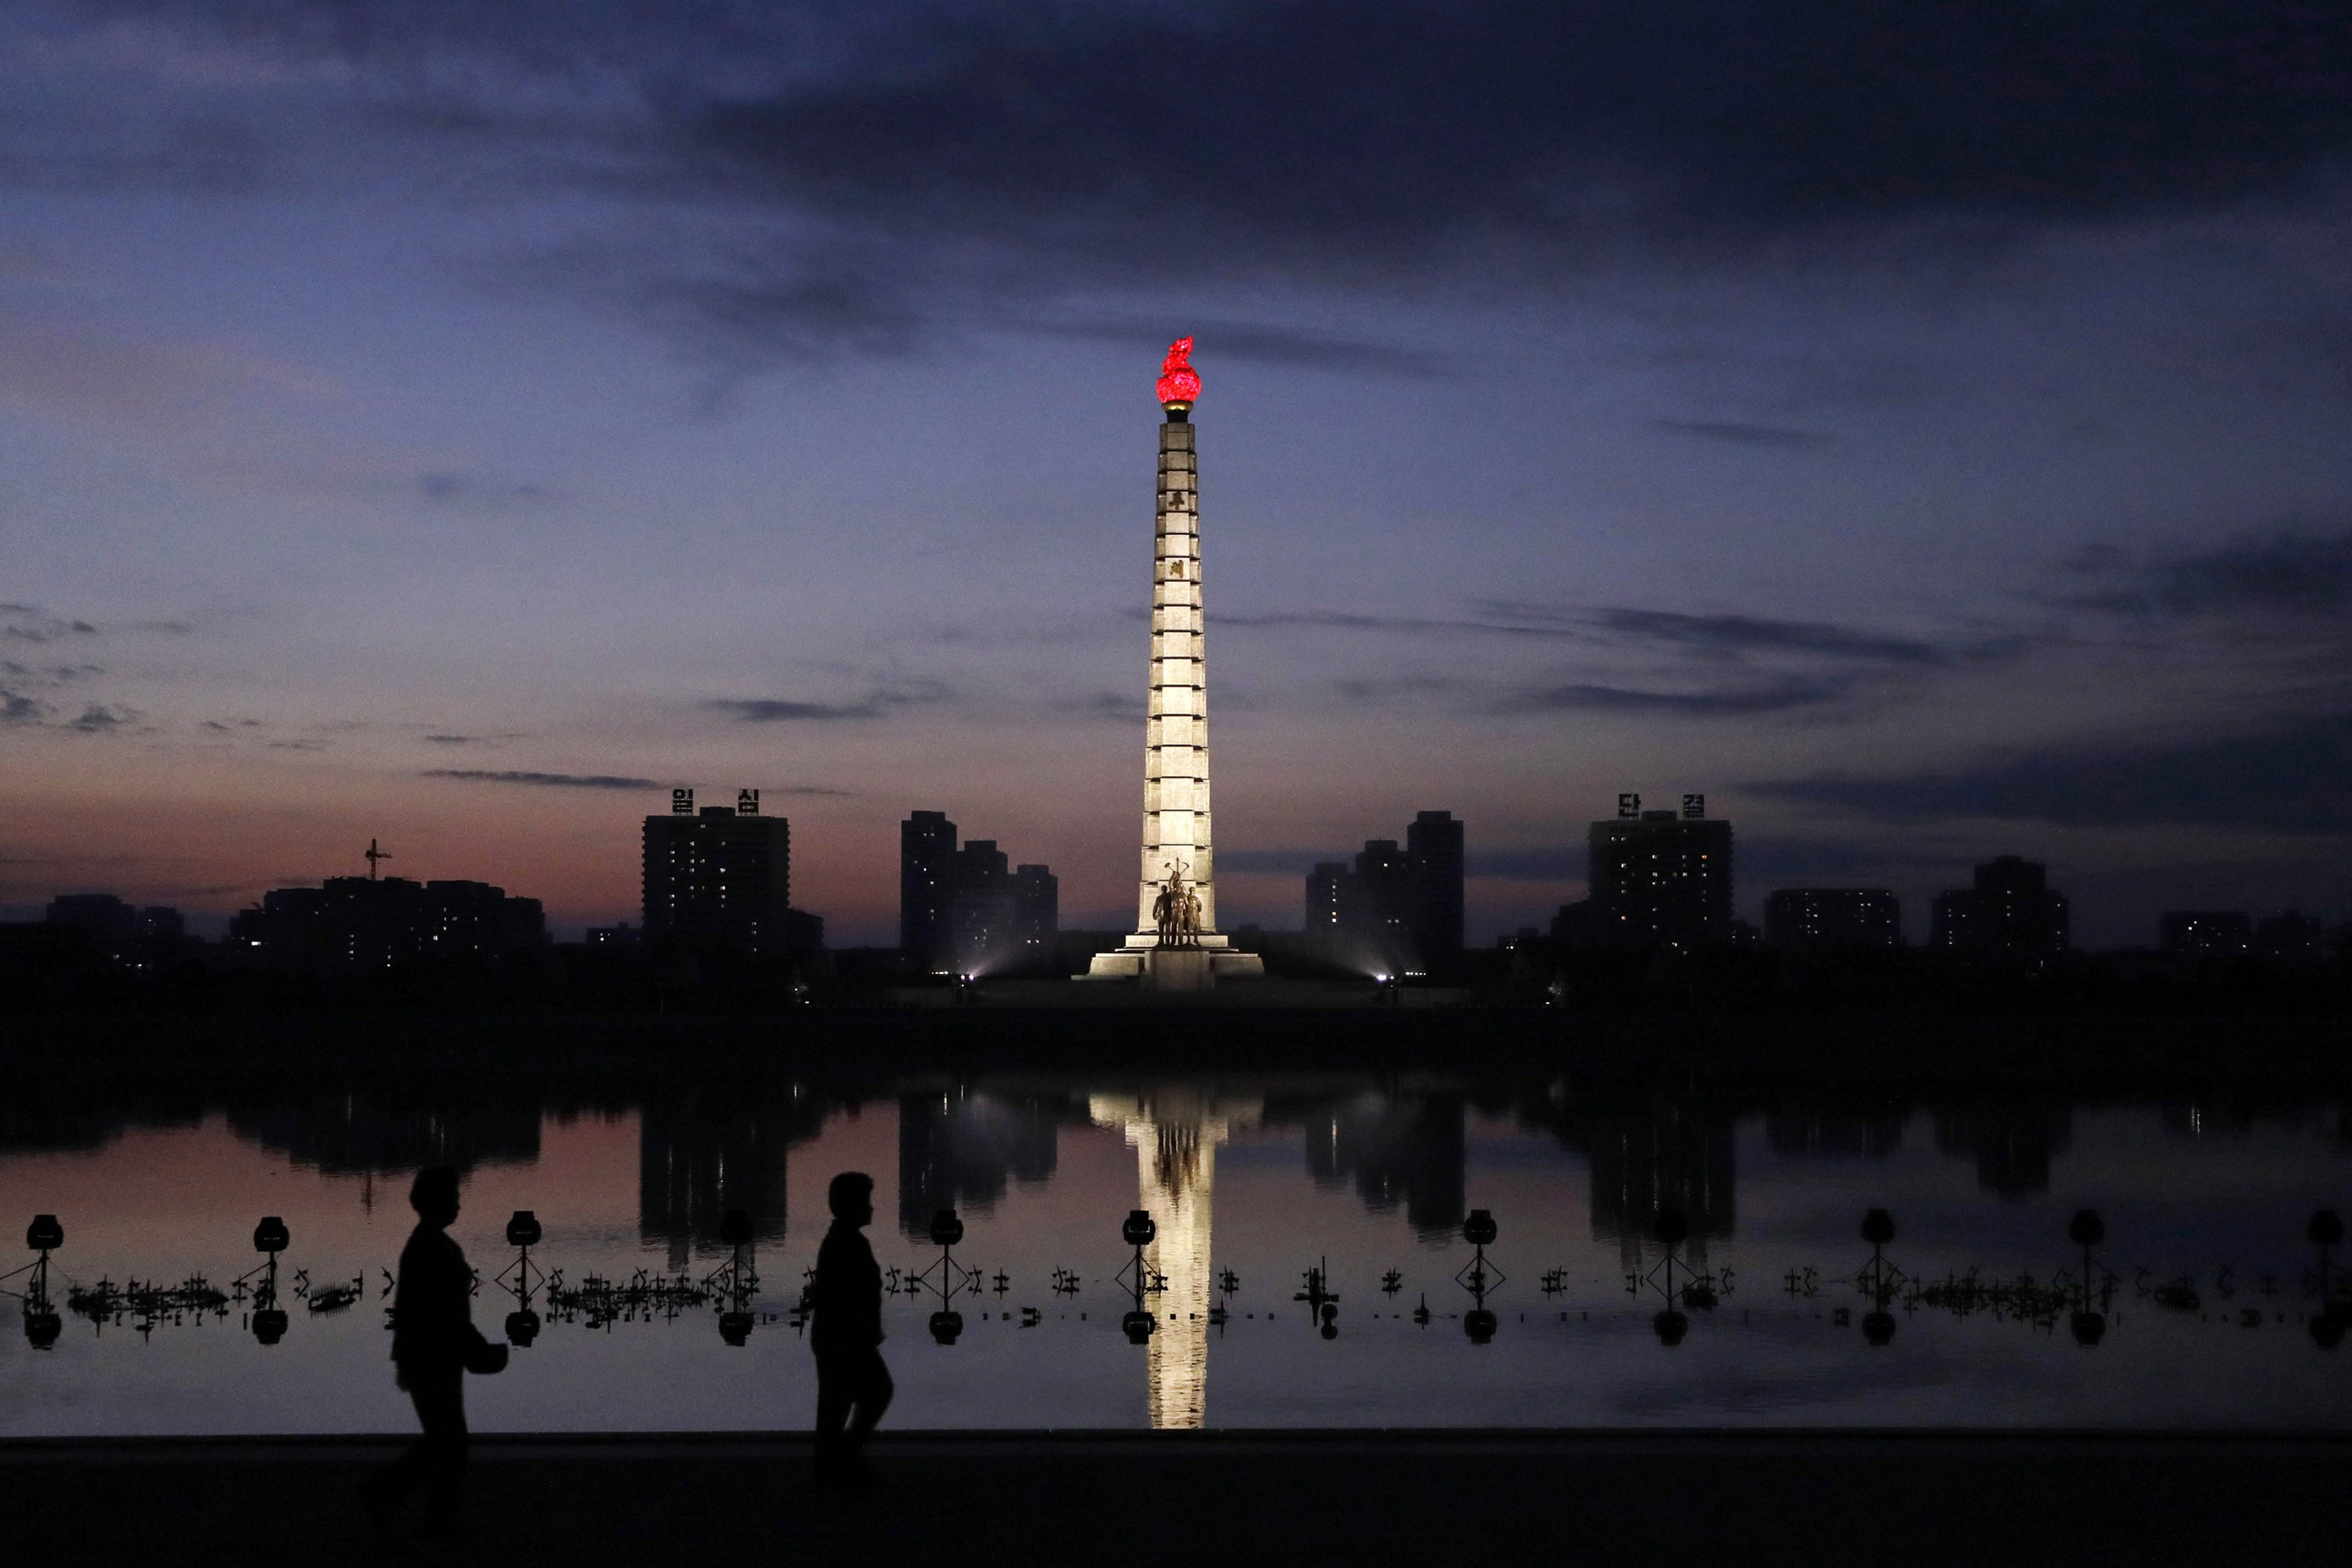 Juche rules North Korean propaganda, but what does it mean?